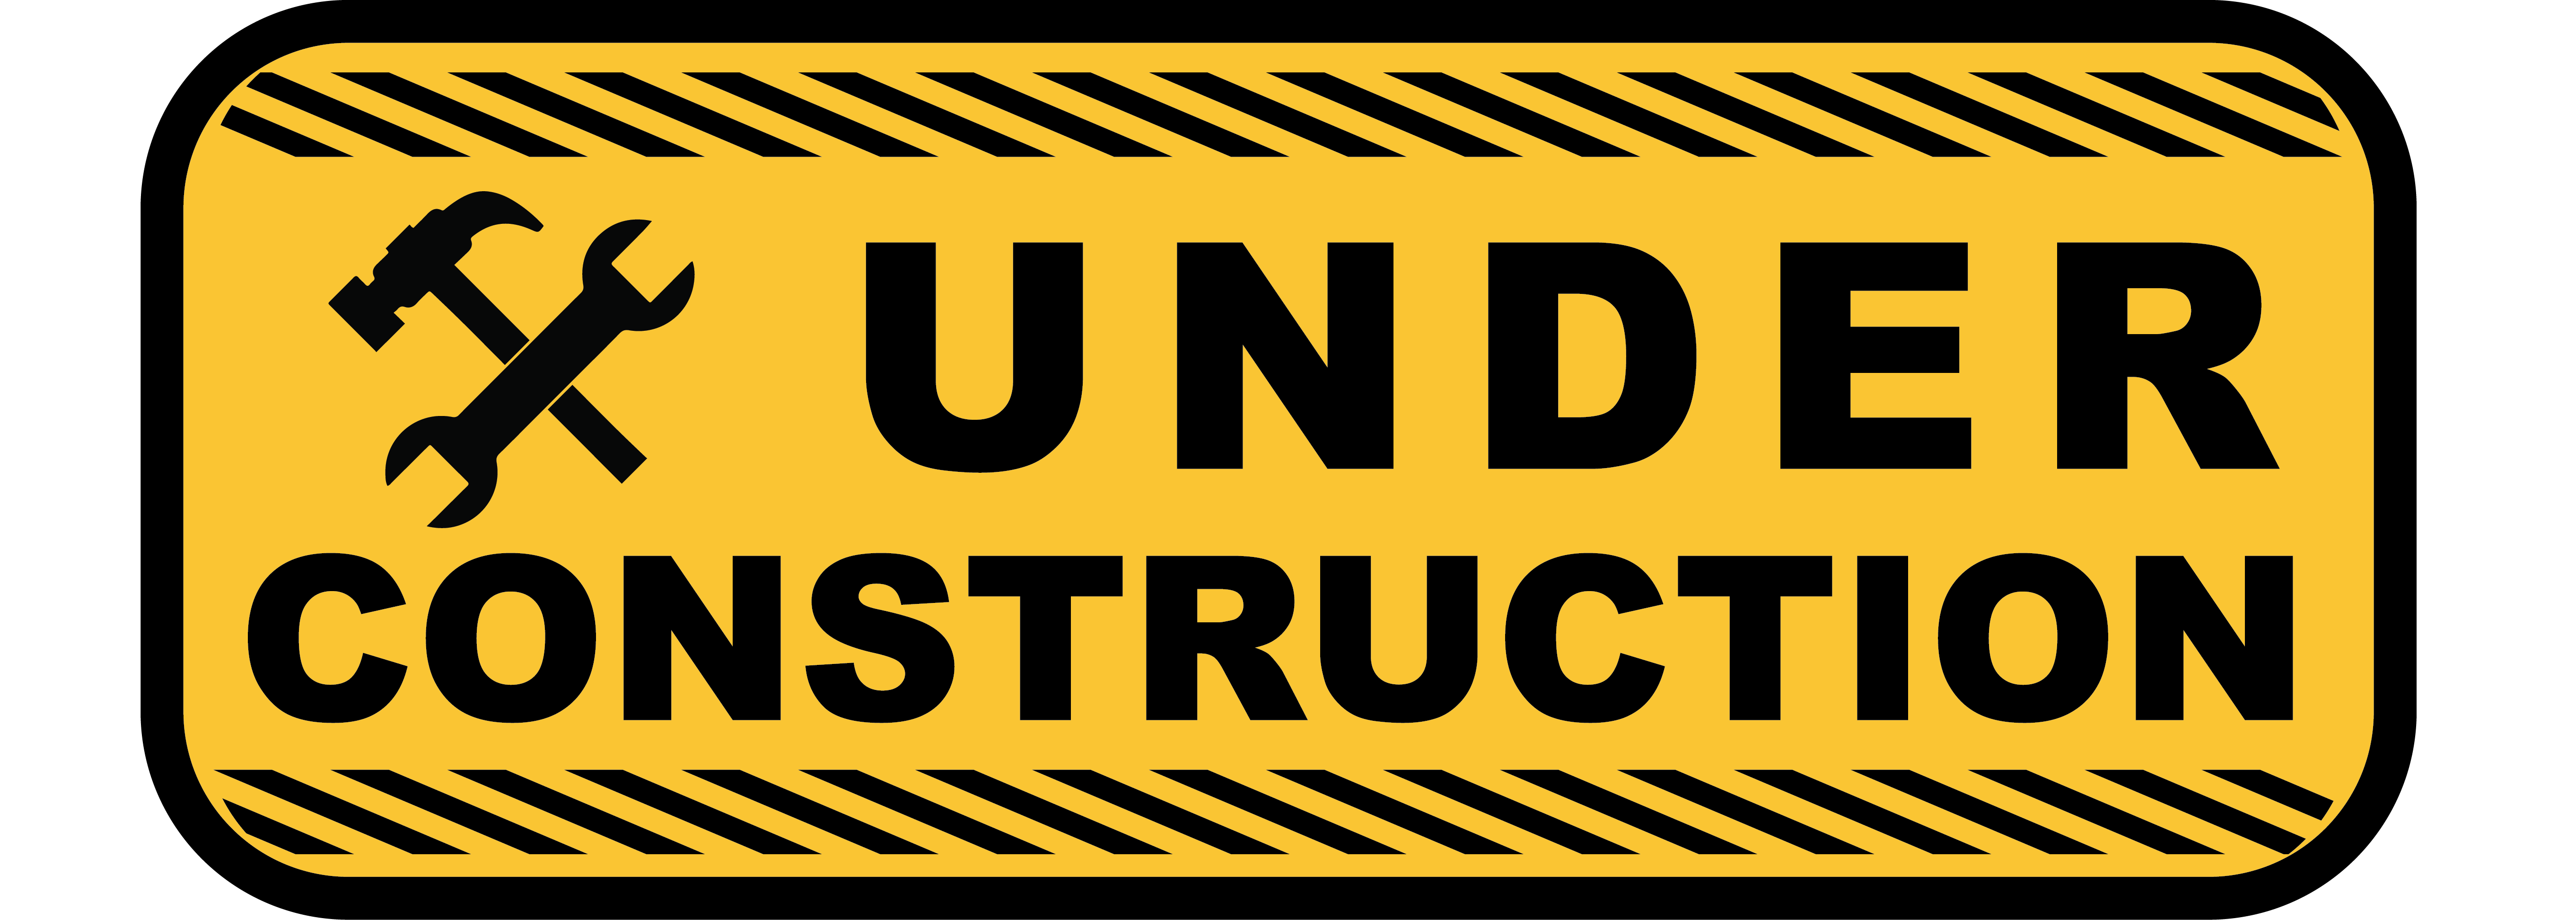 "Image of a sign that reads ""Under Construction"". The sign is to let visitors of the webpage know this page is still not complete."